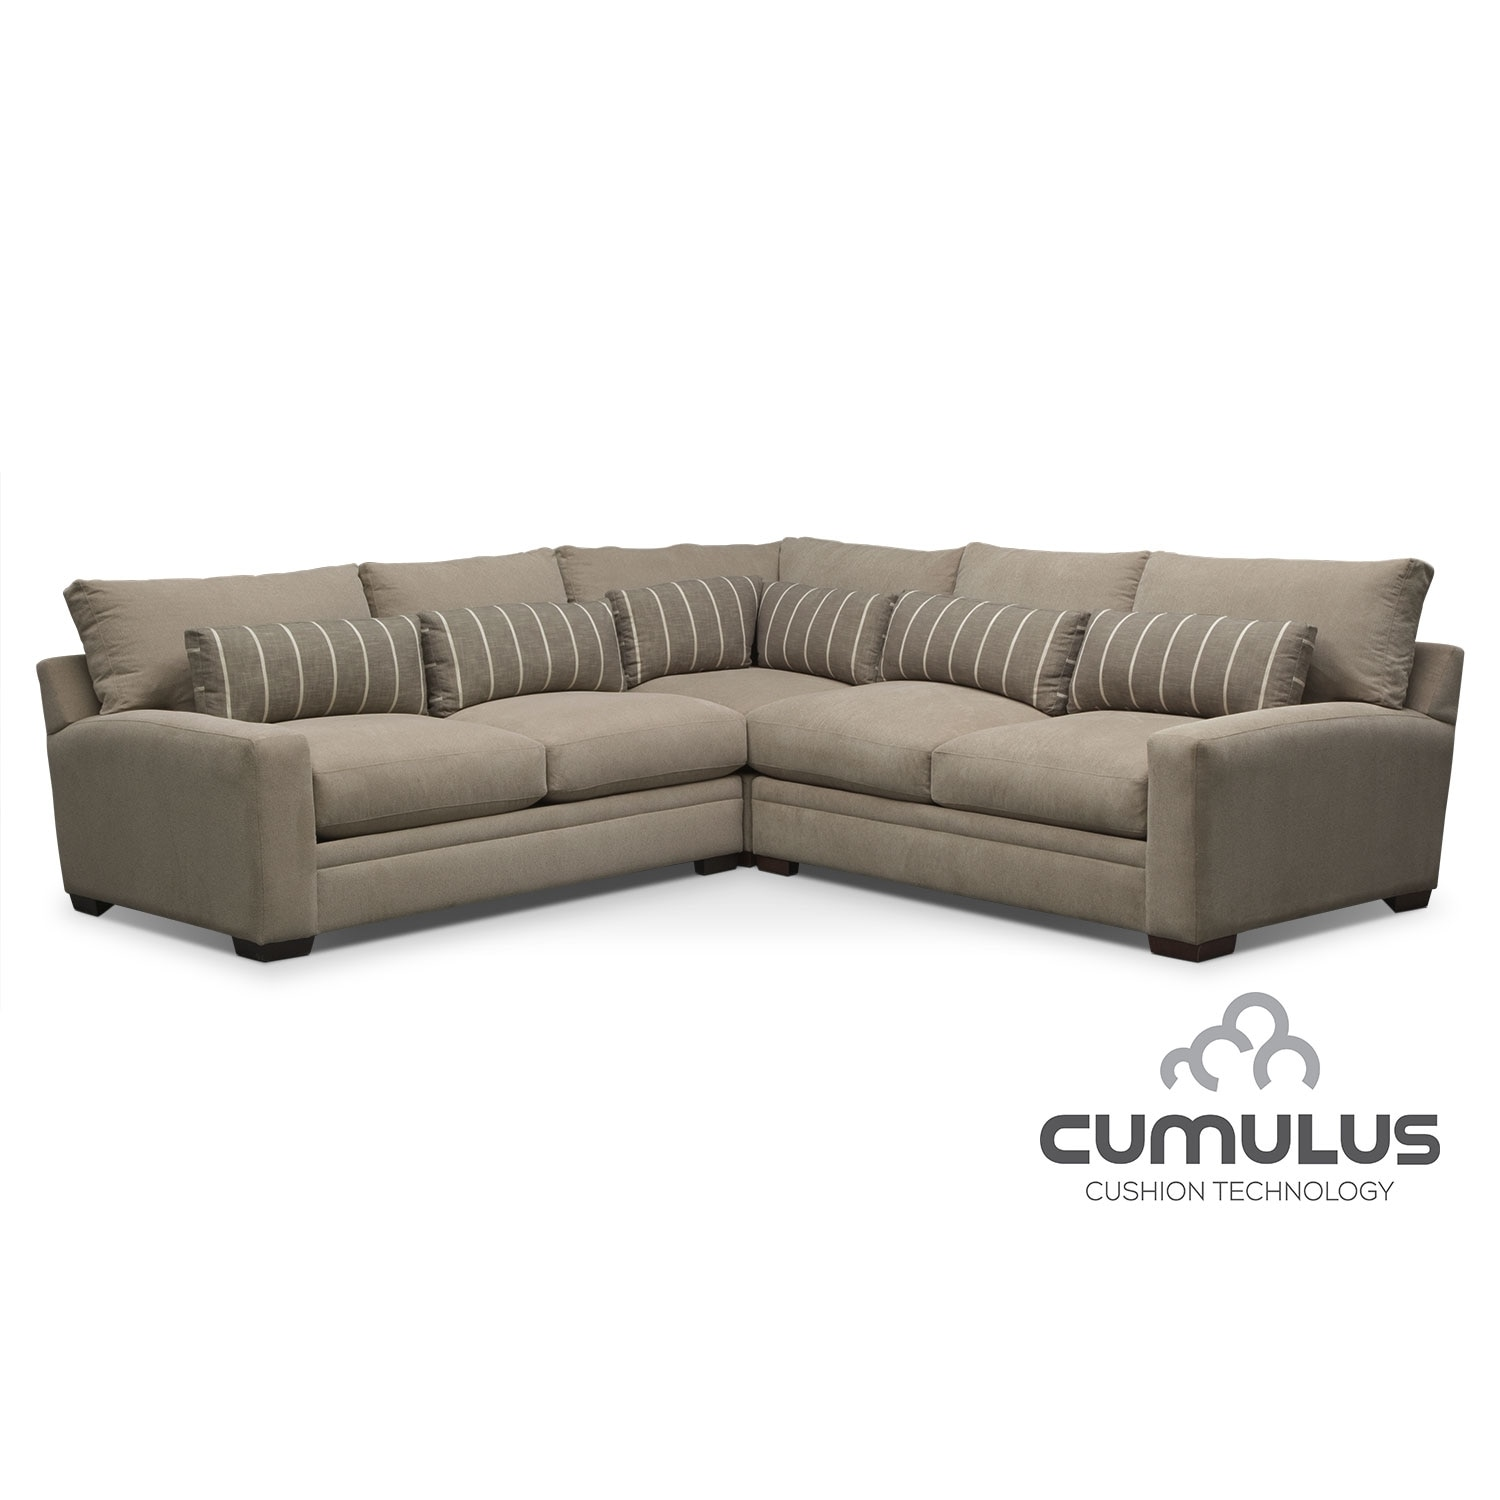 Ventura 3-Piece Sectional - Buff